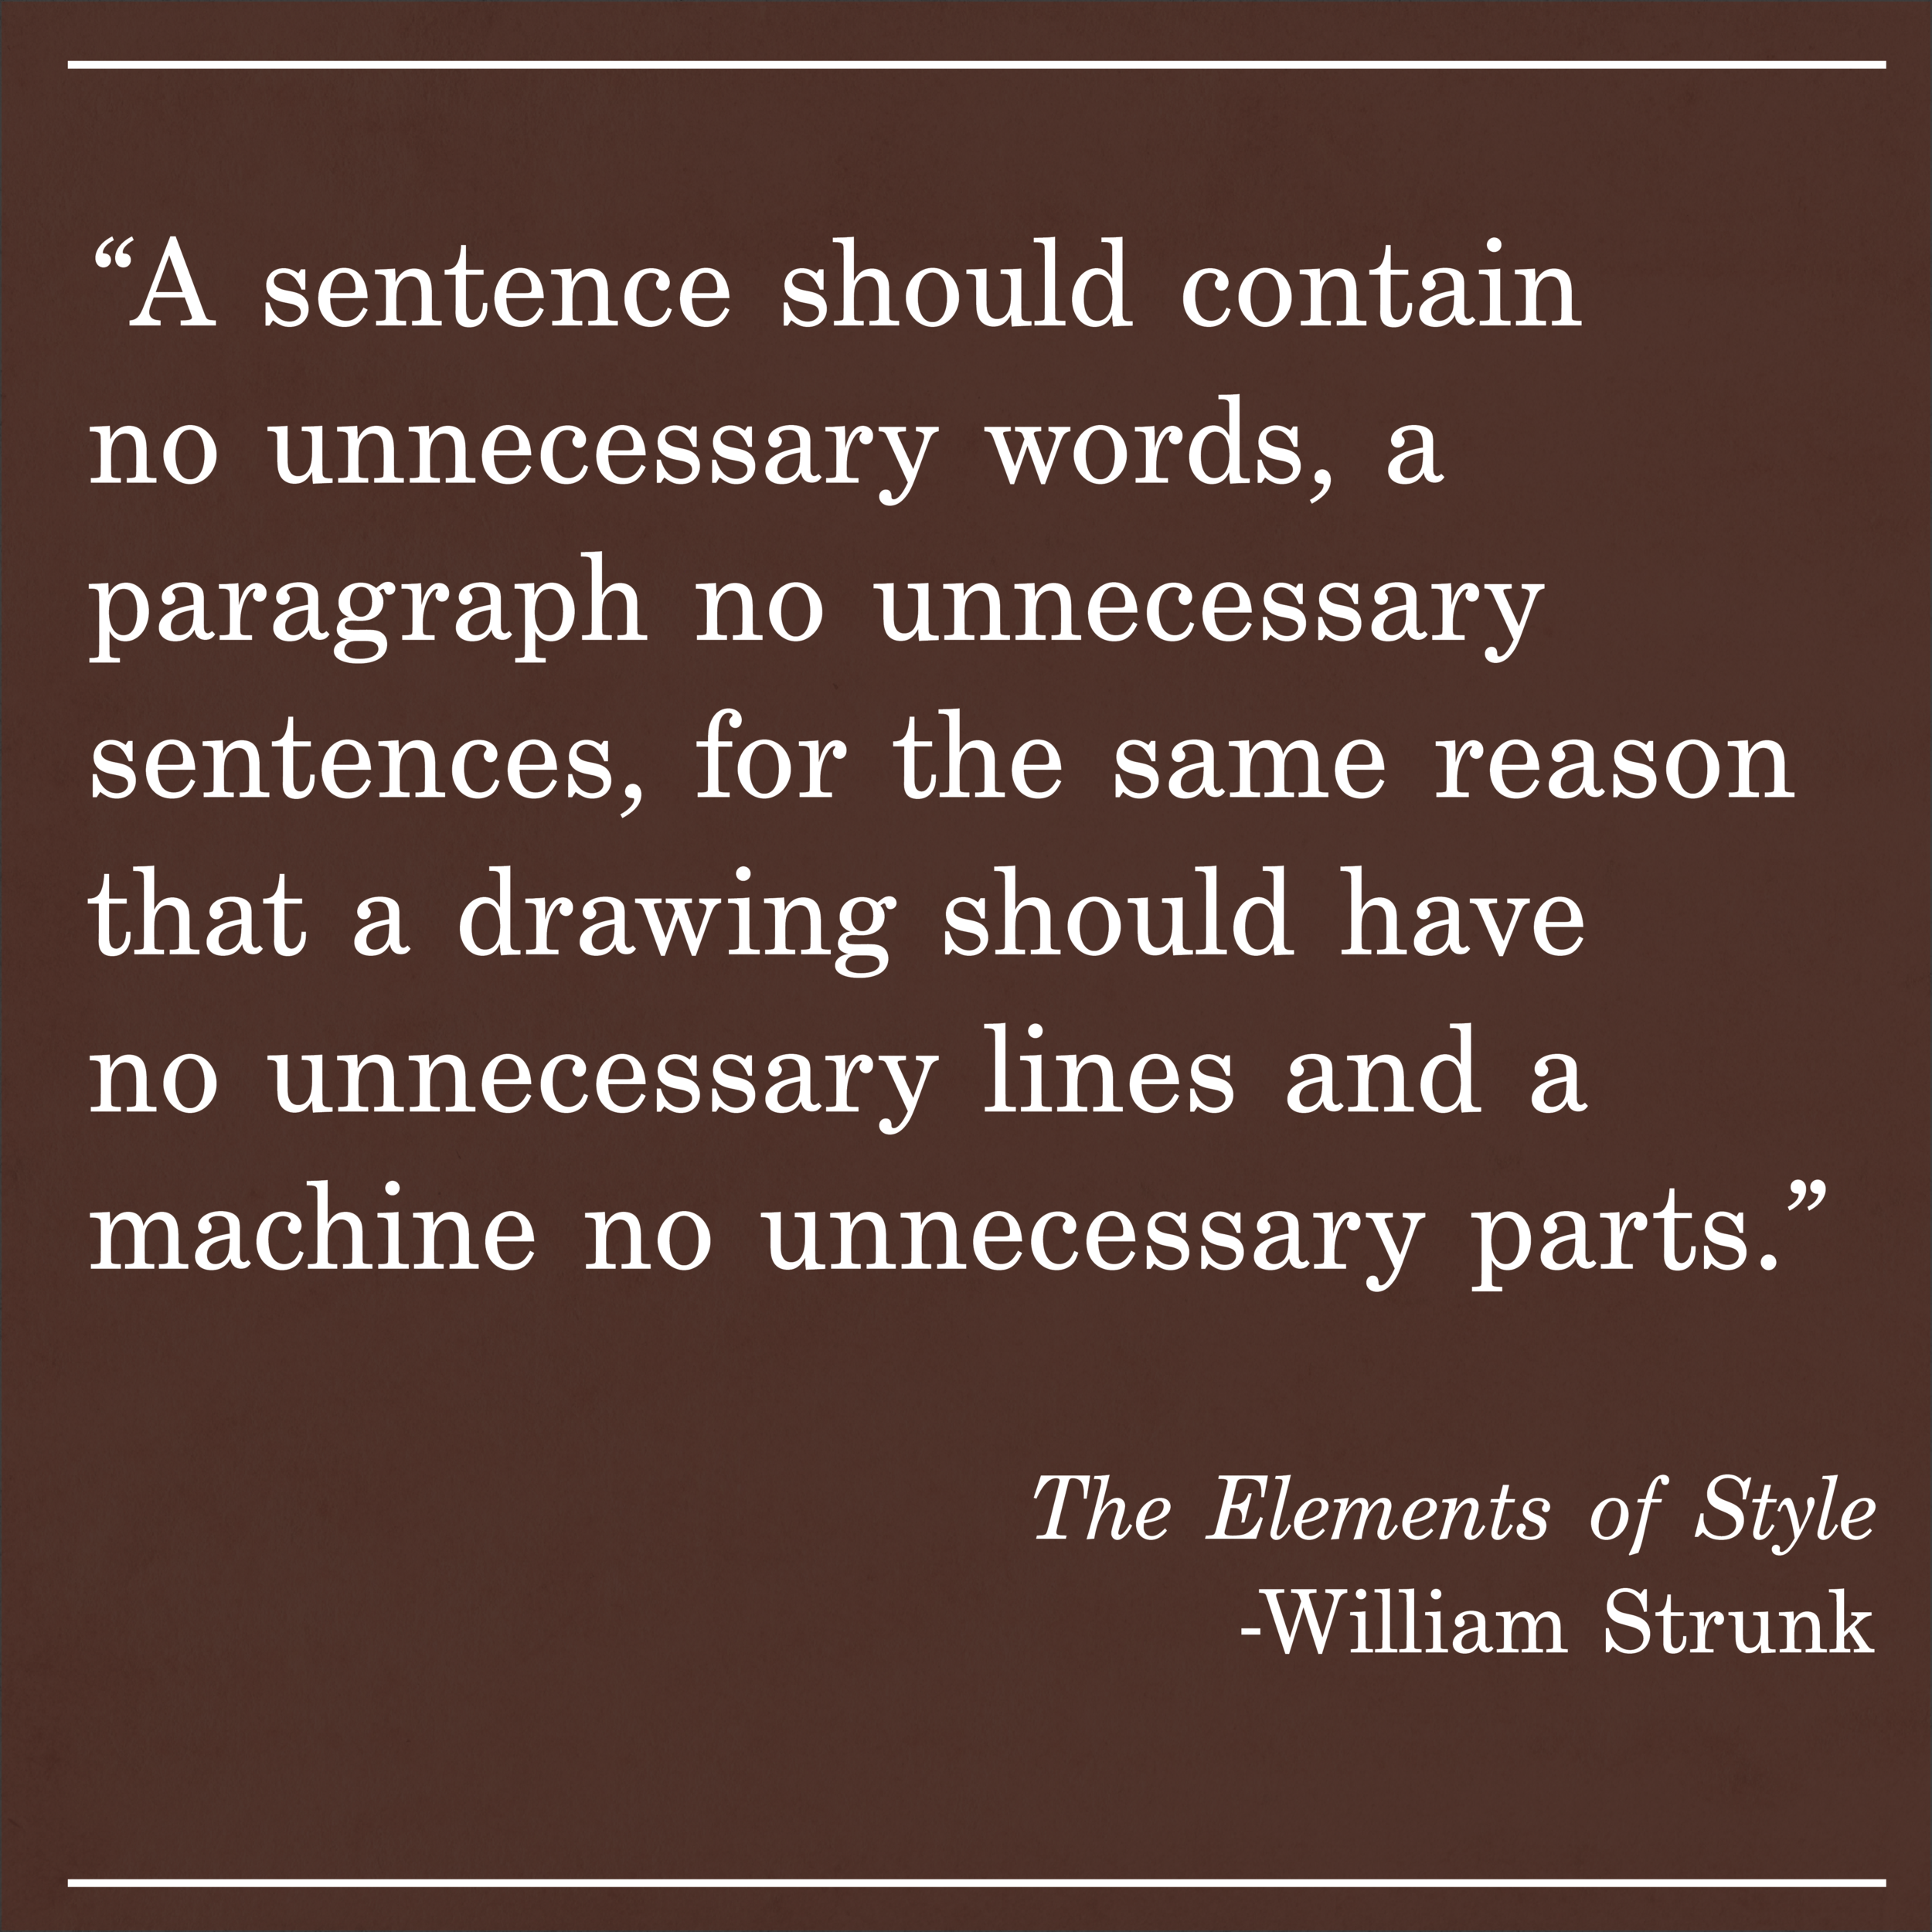 Daily Quote The Elements of Style by William Strunk